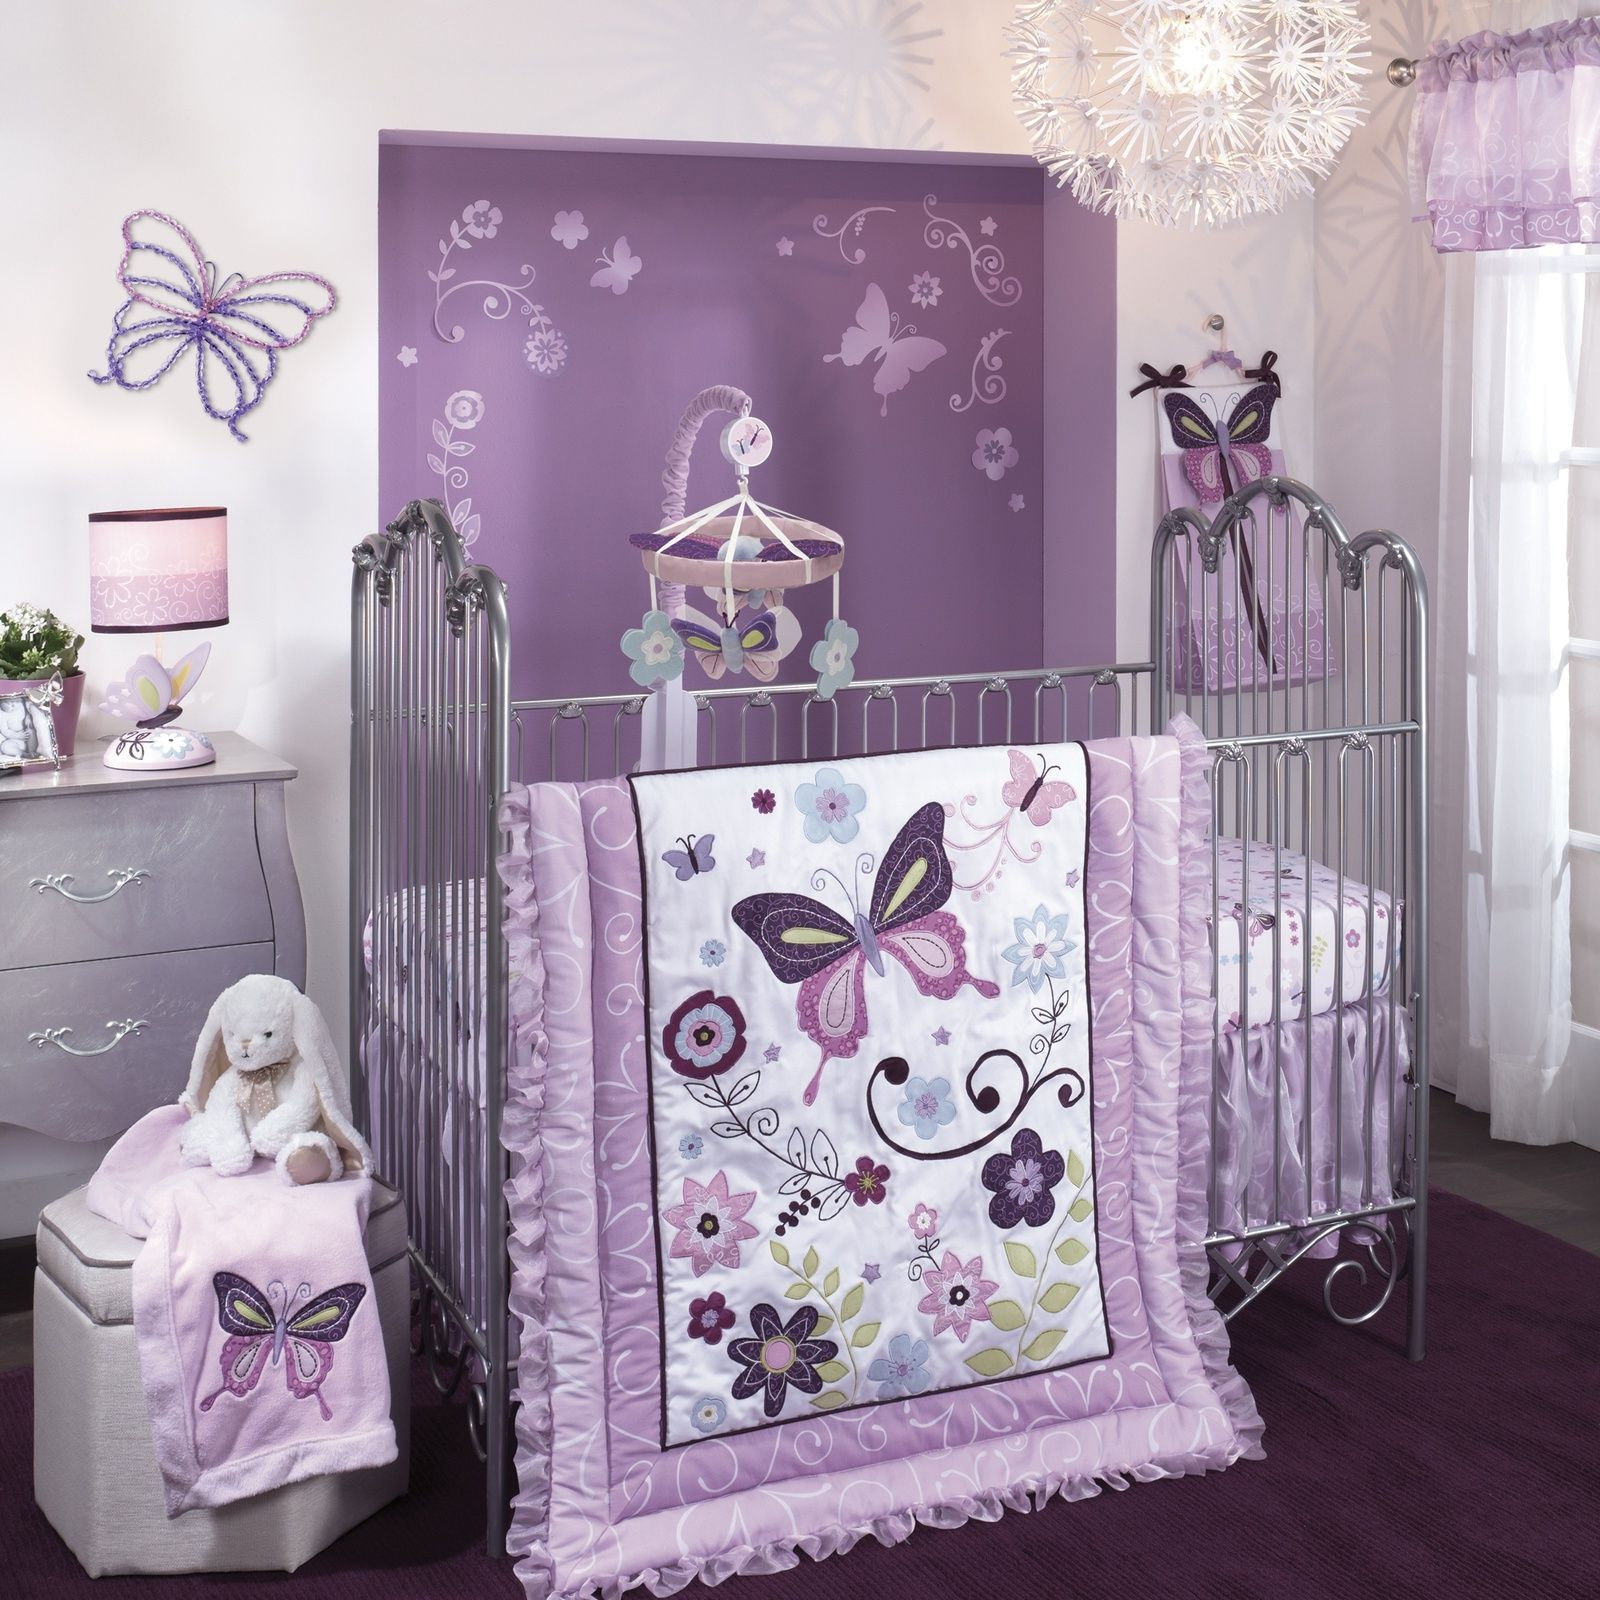 Bedroom cozy purple theme girl nursery ideas lambs and for Butterfly themed bedroom ideas